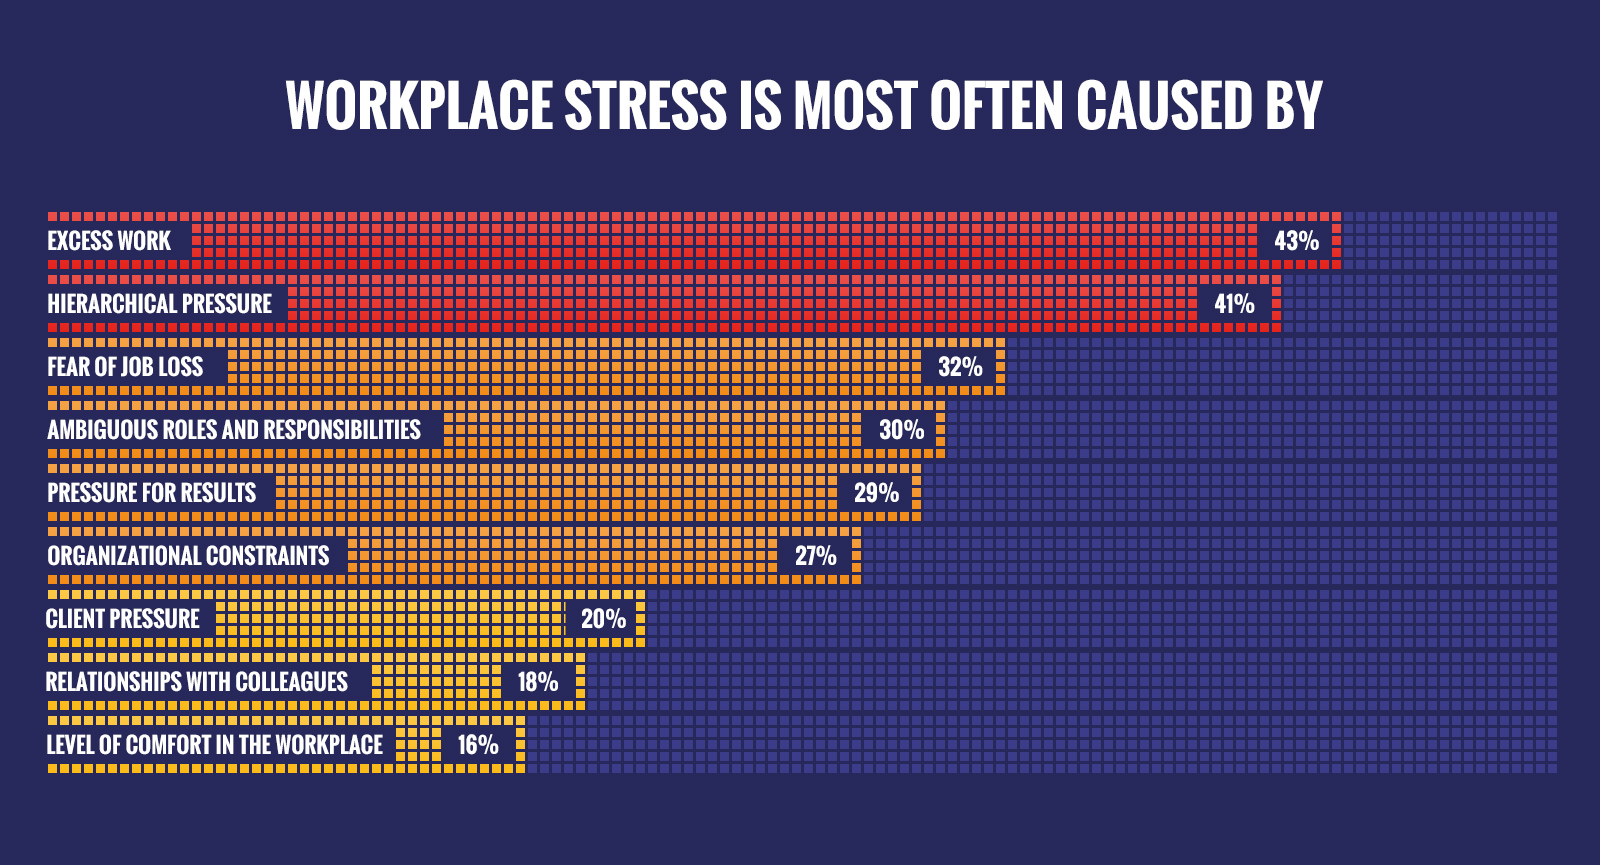 Top Causes of Workplace Stress